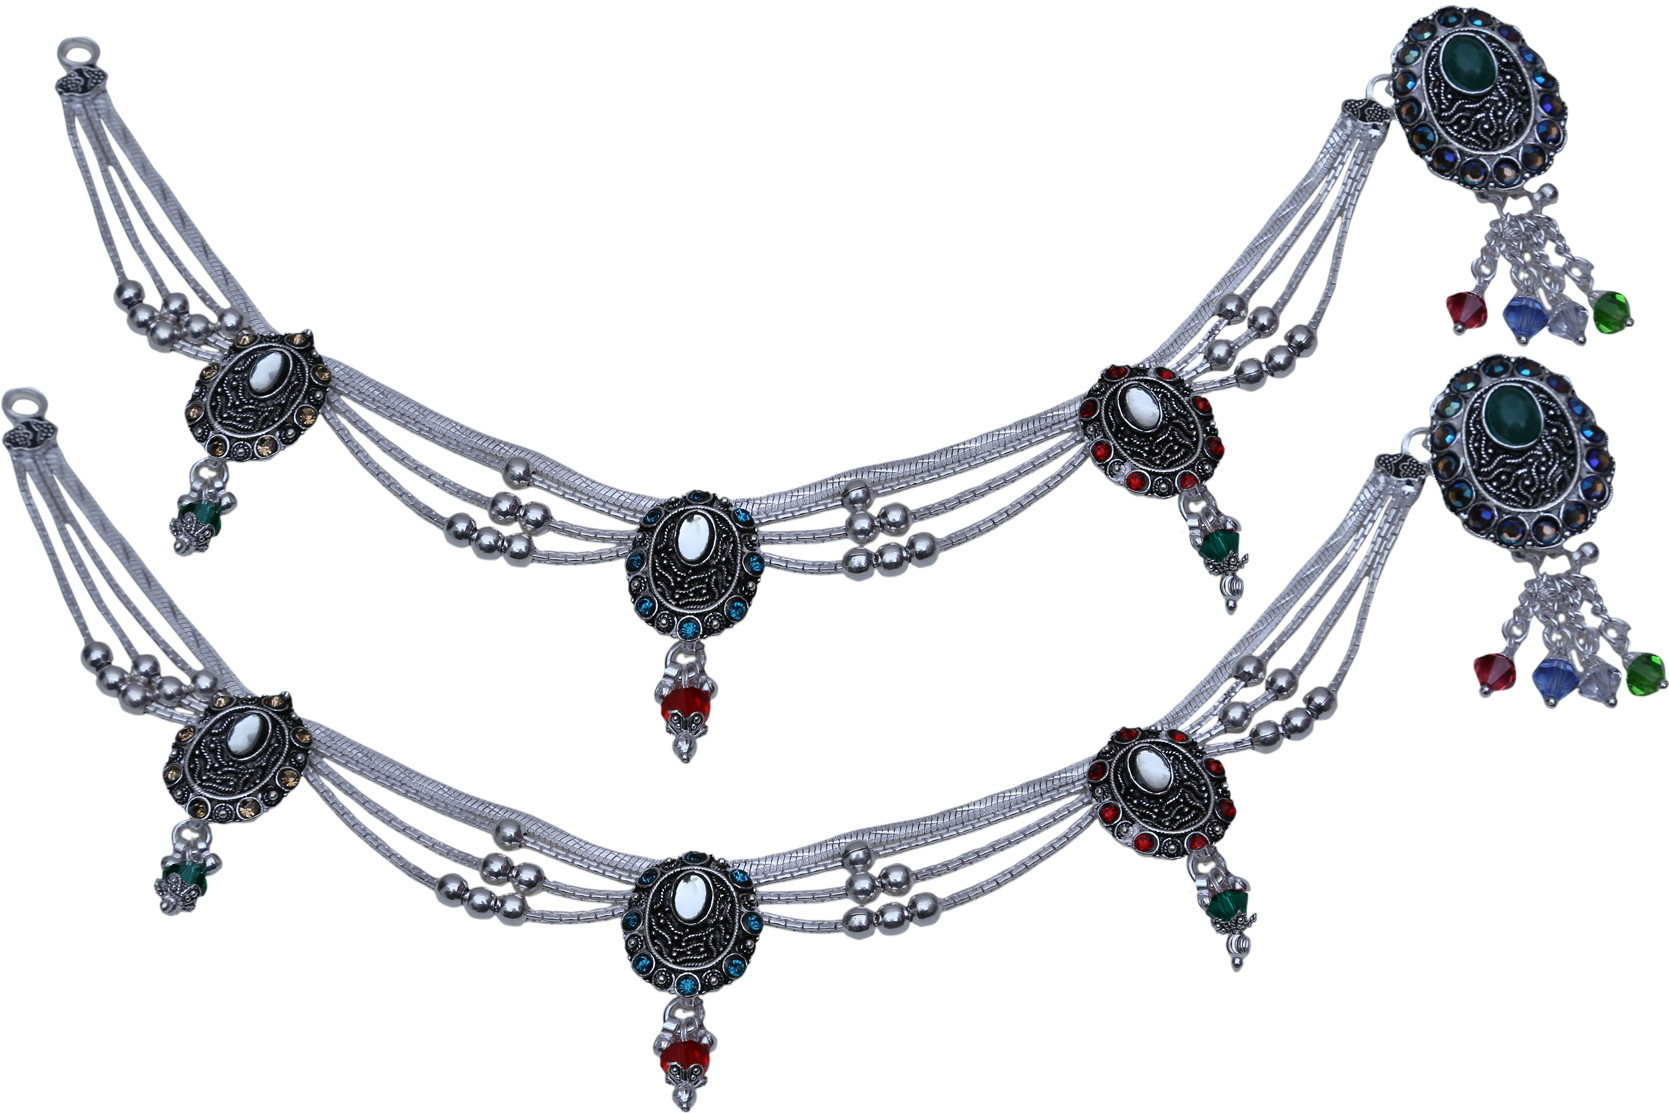 Aman d8nv4807 Ball Chain Jhula Payal Silver Anklet - Best Price in ...